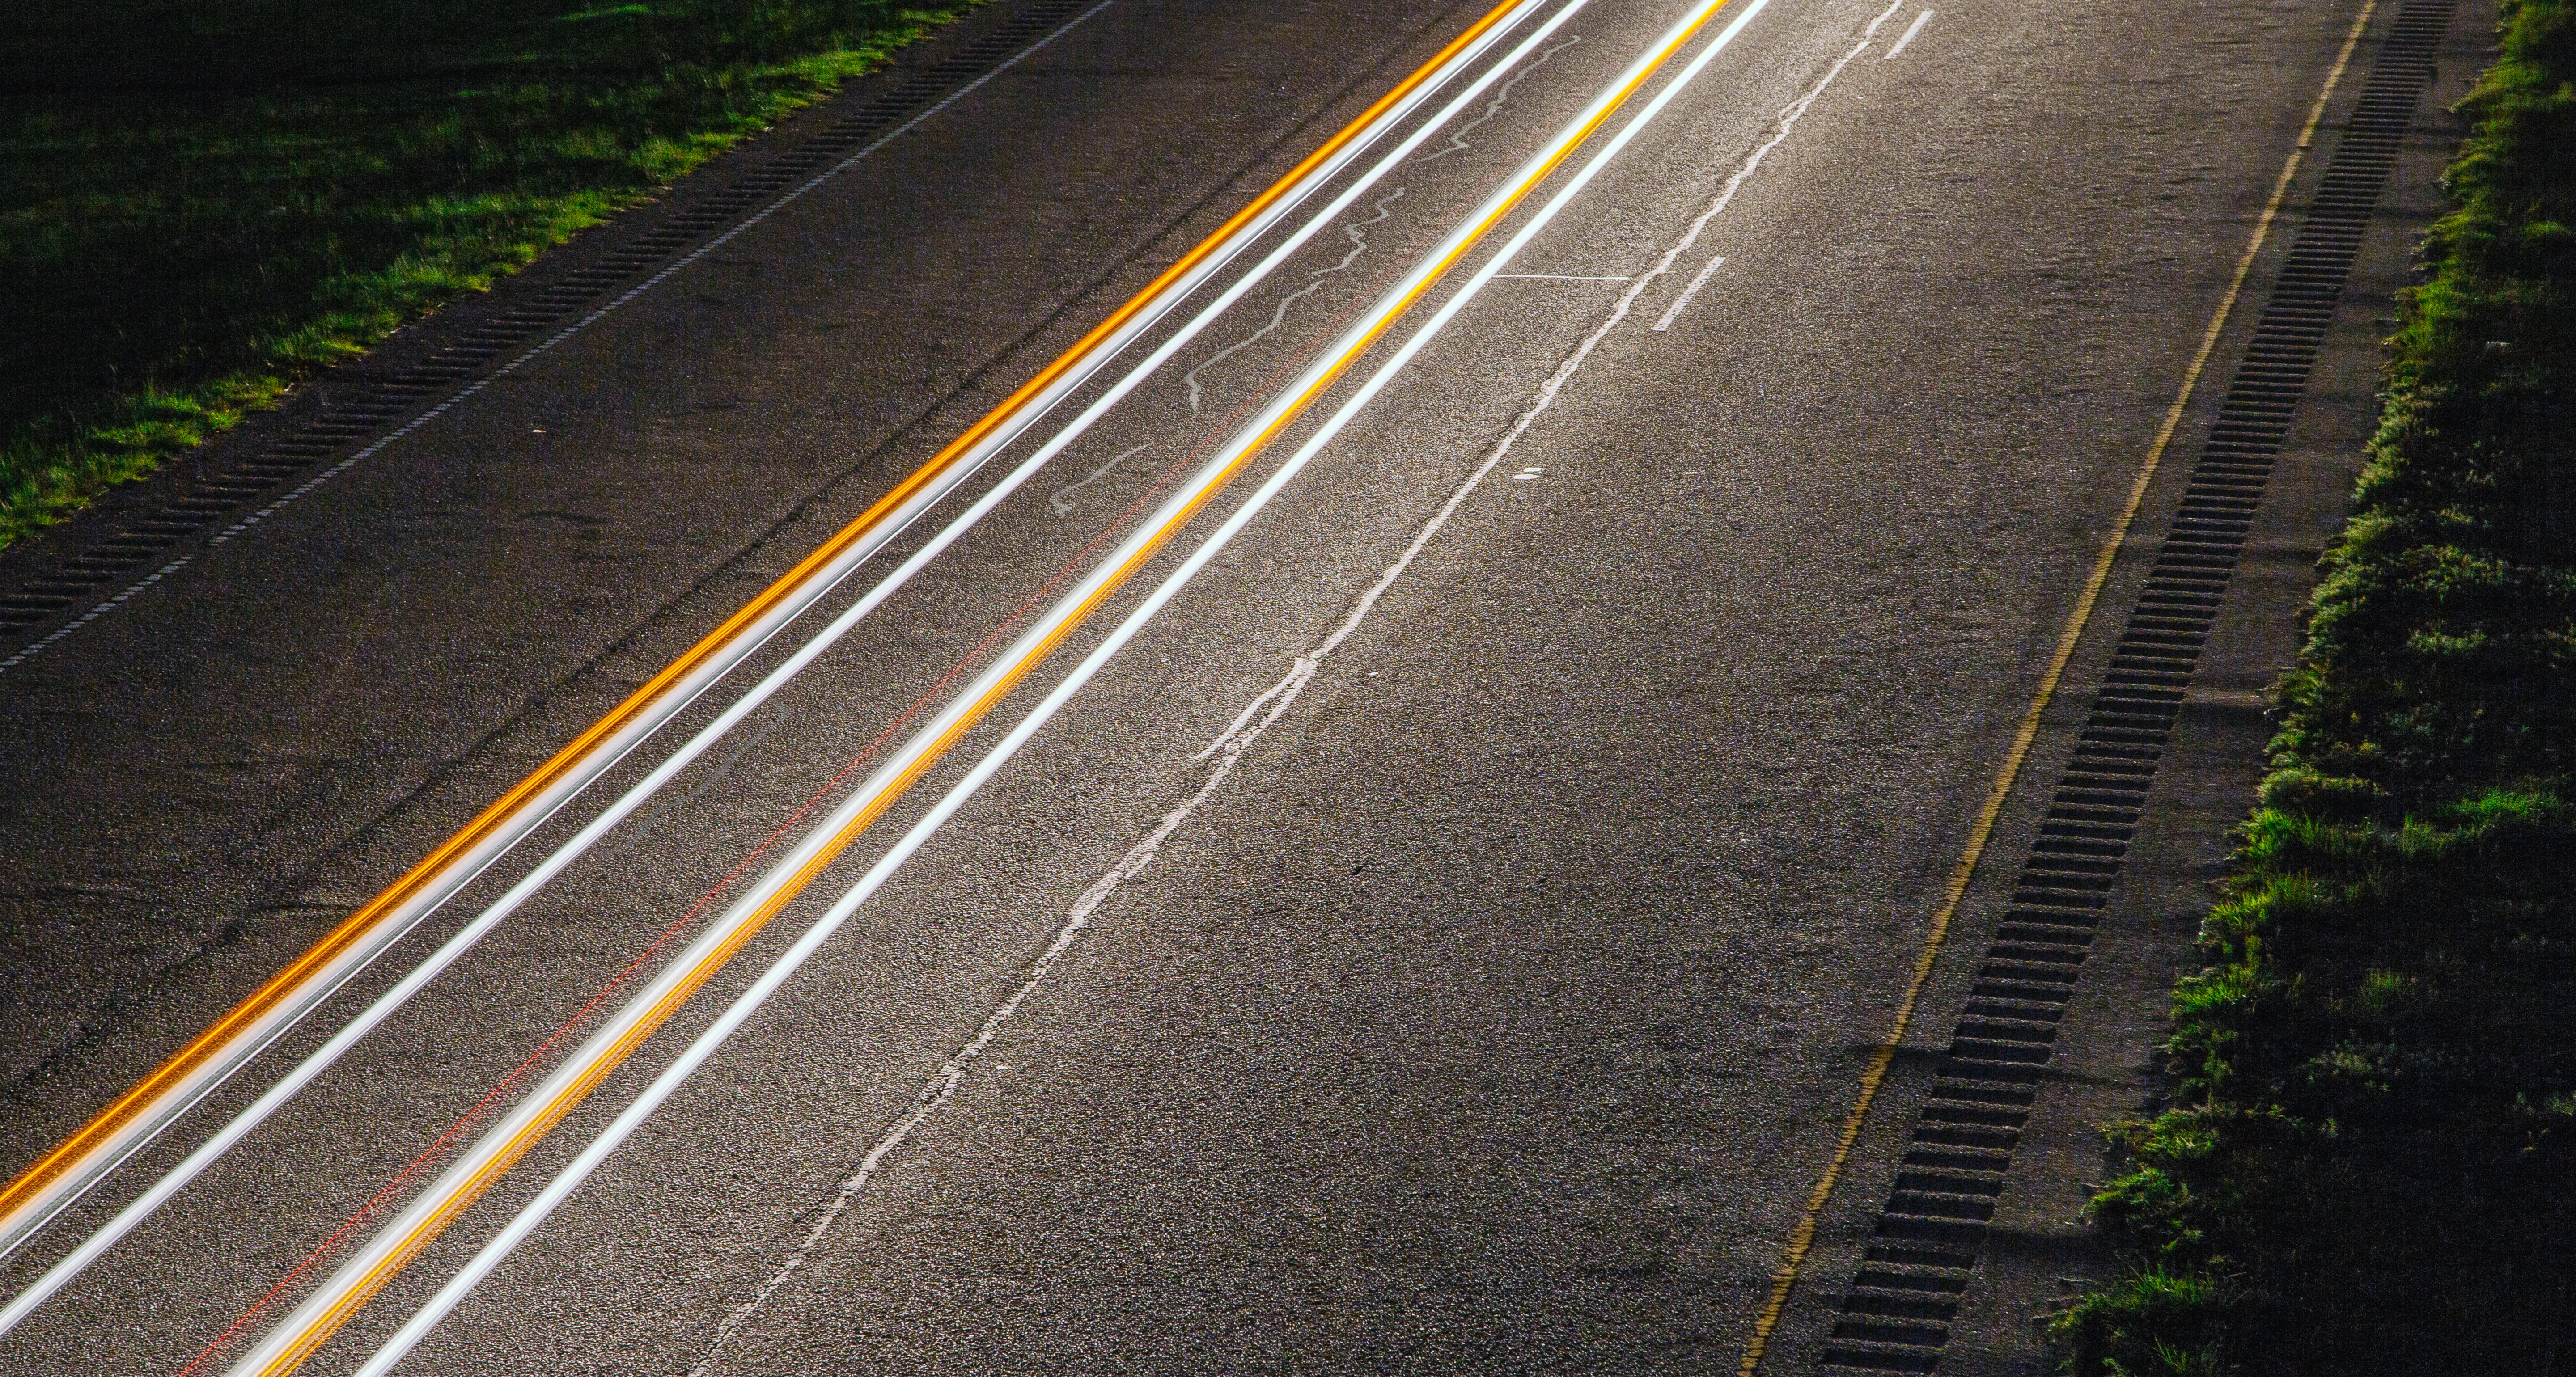 panning photo of light on road